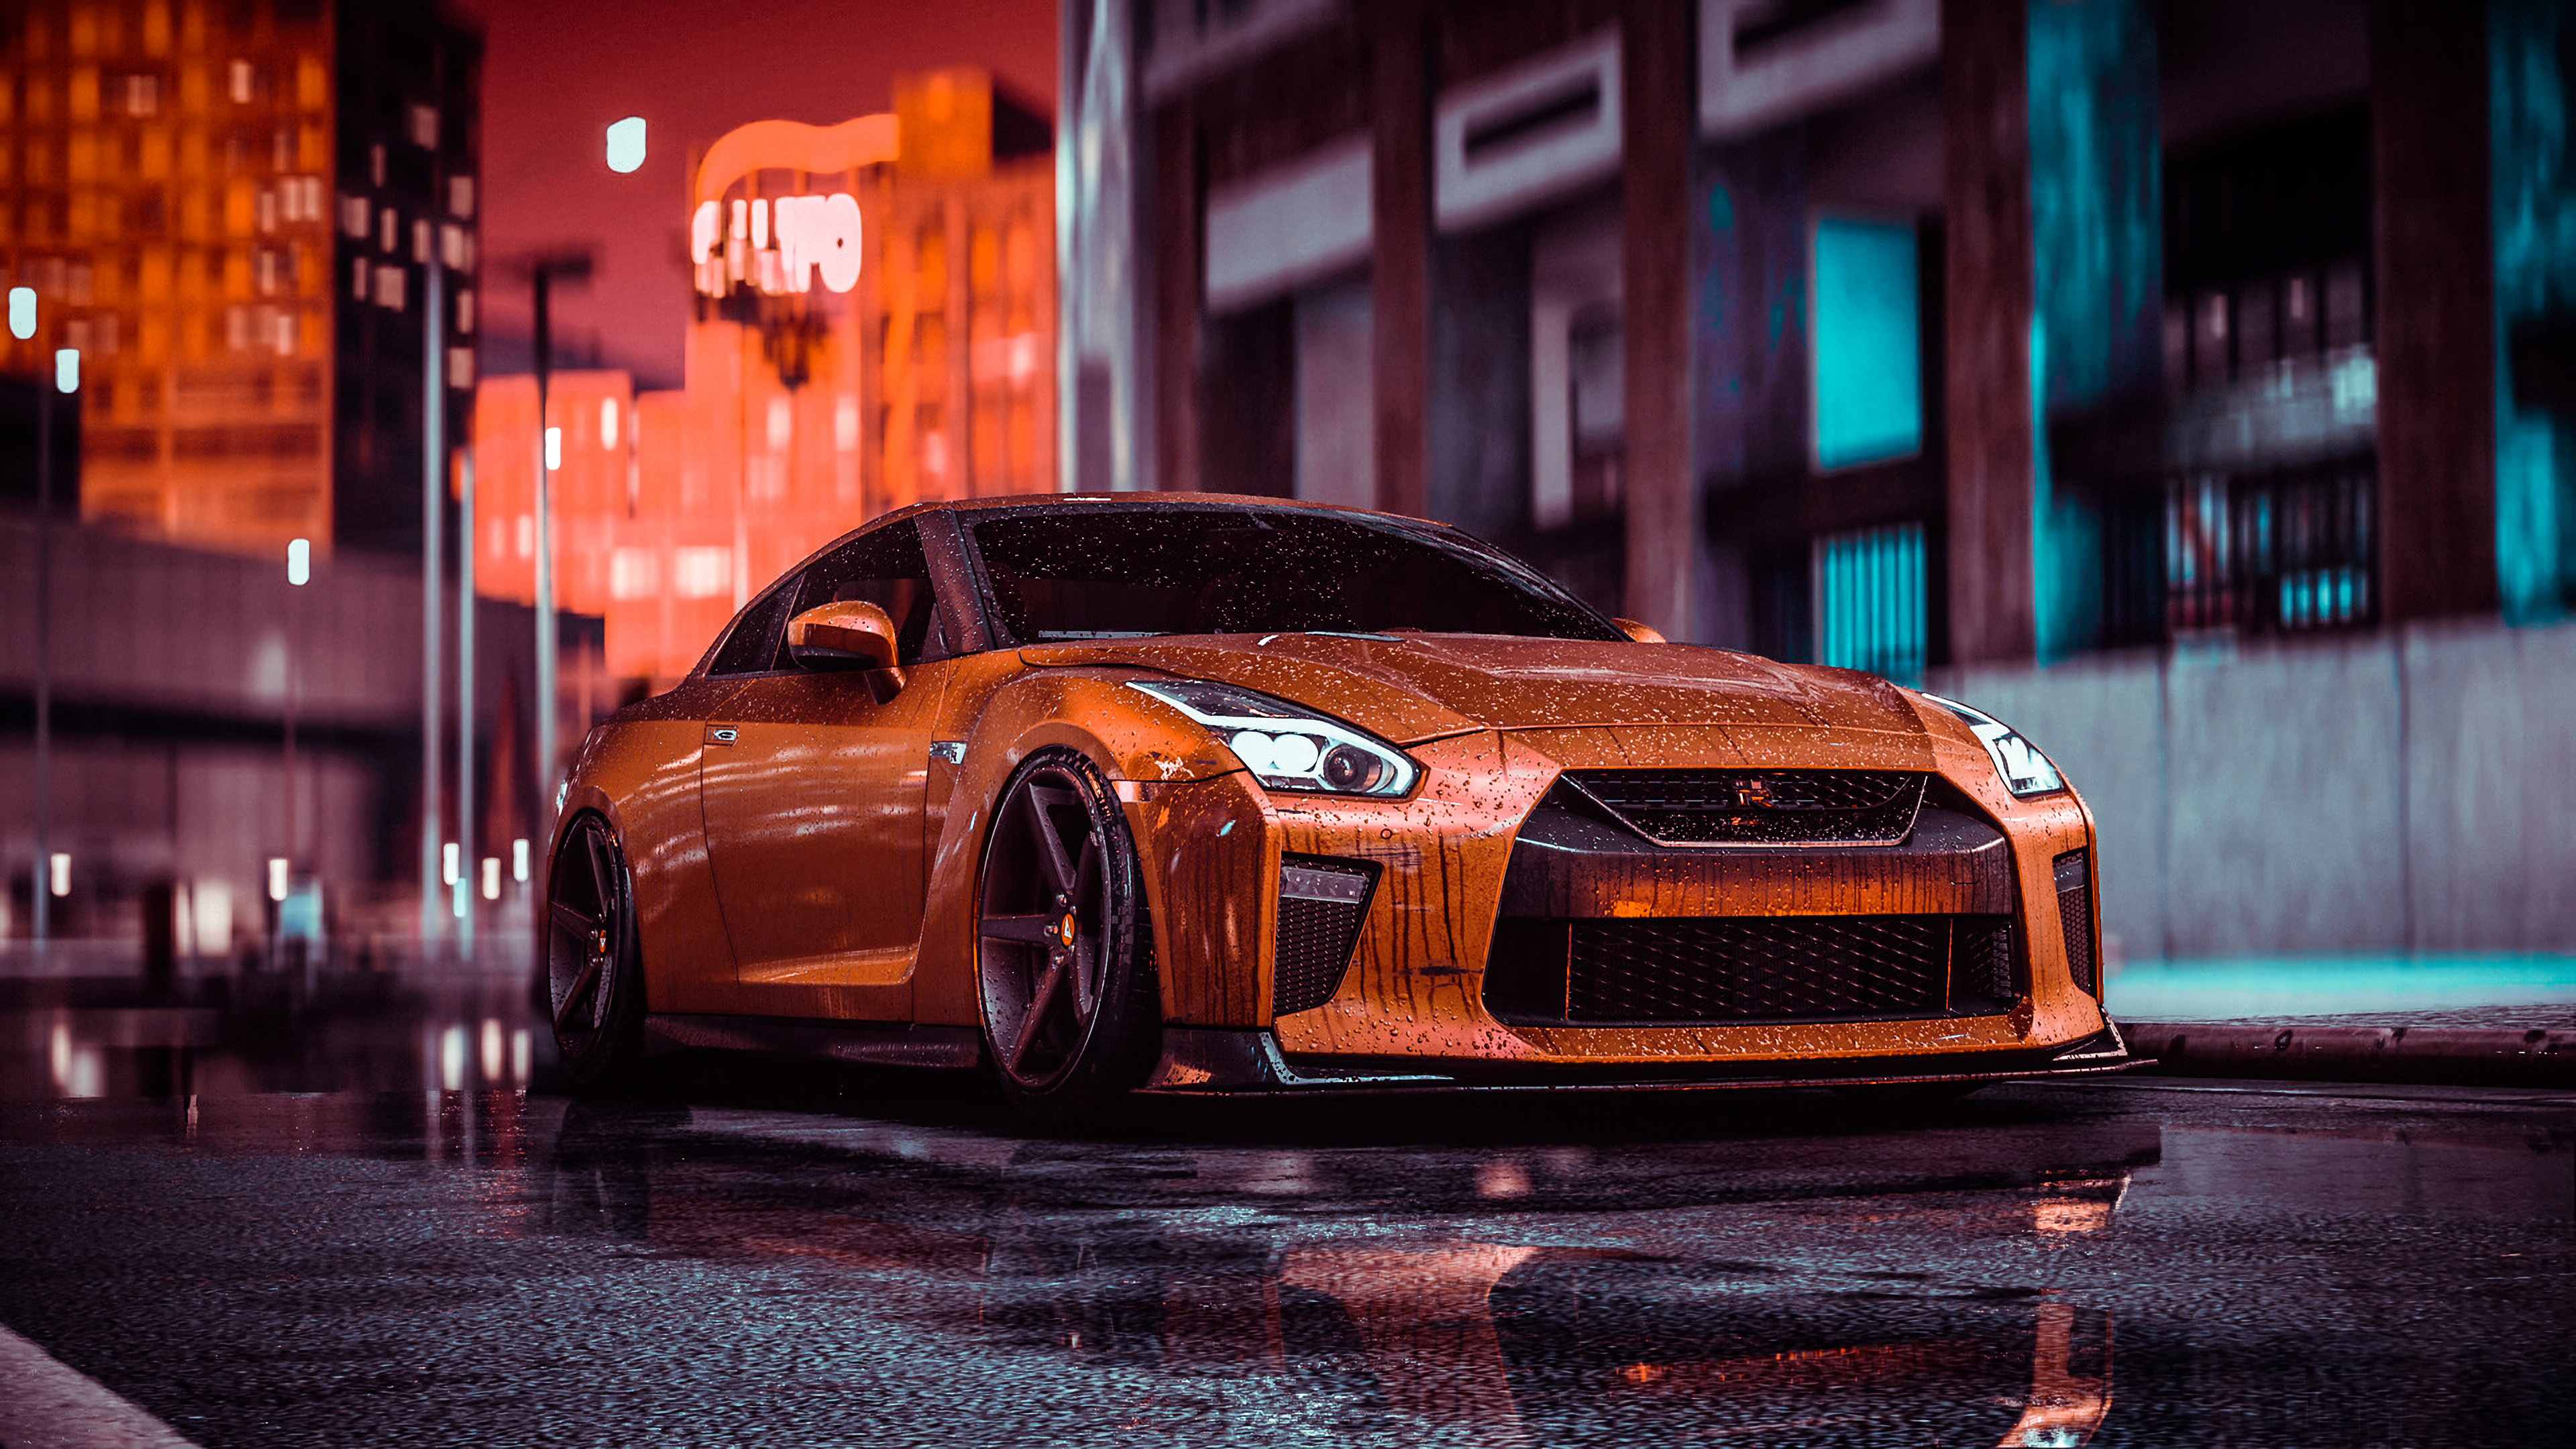 Nissan Gtr Nfs Front 4k Hd Cars 4k Wallpapers Images Backgrounds Photos And Pictures